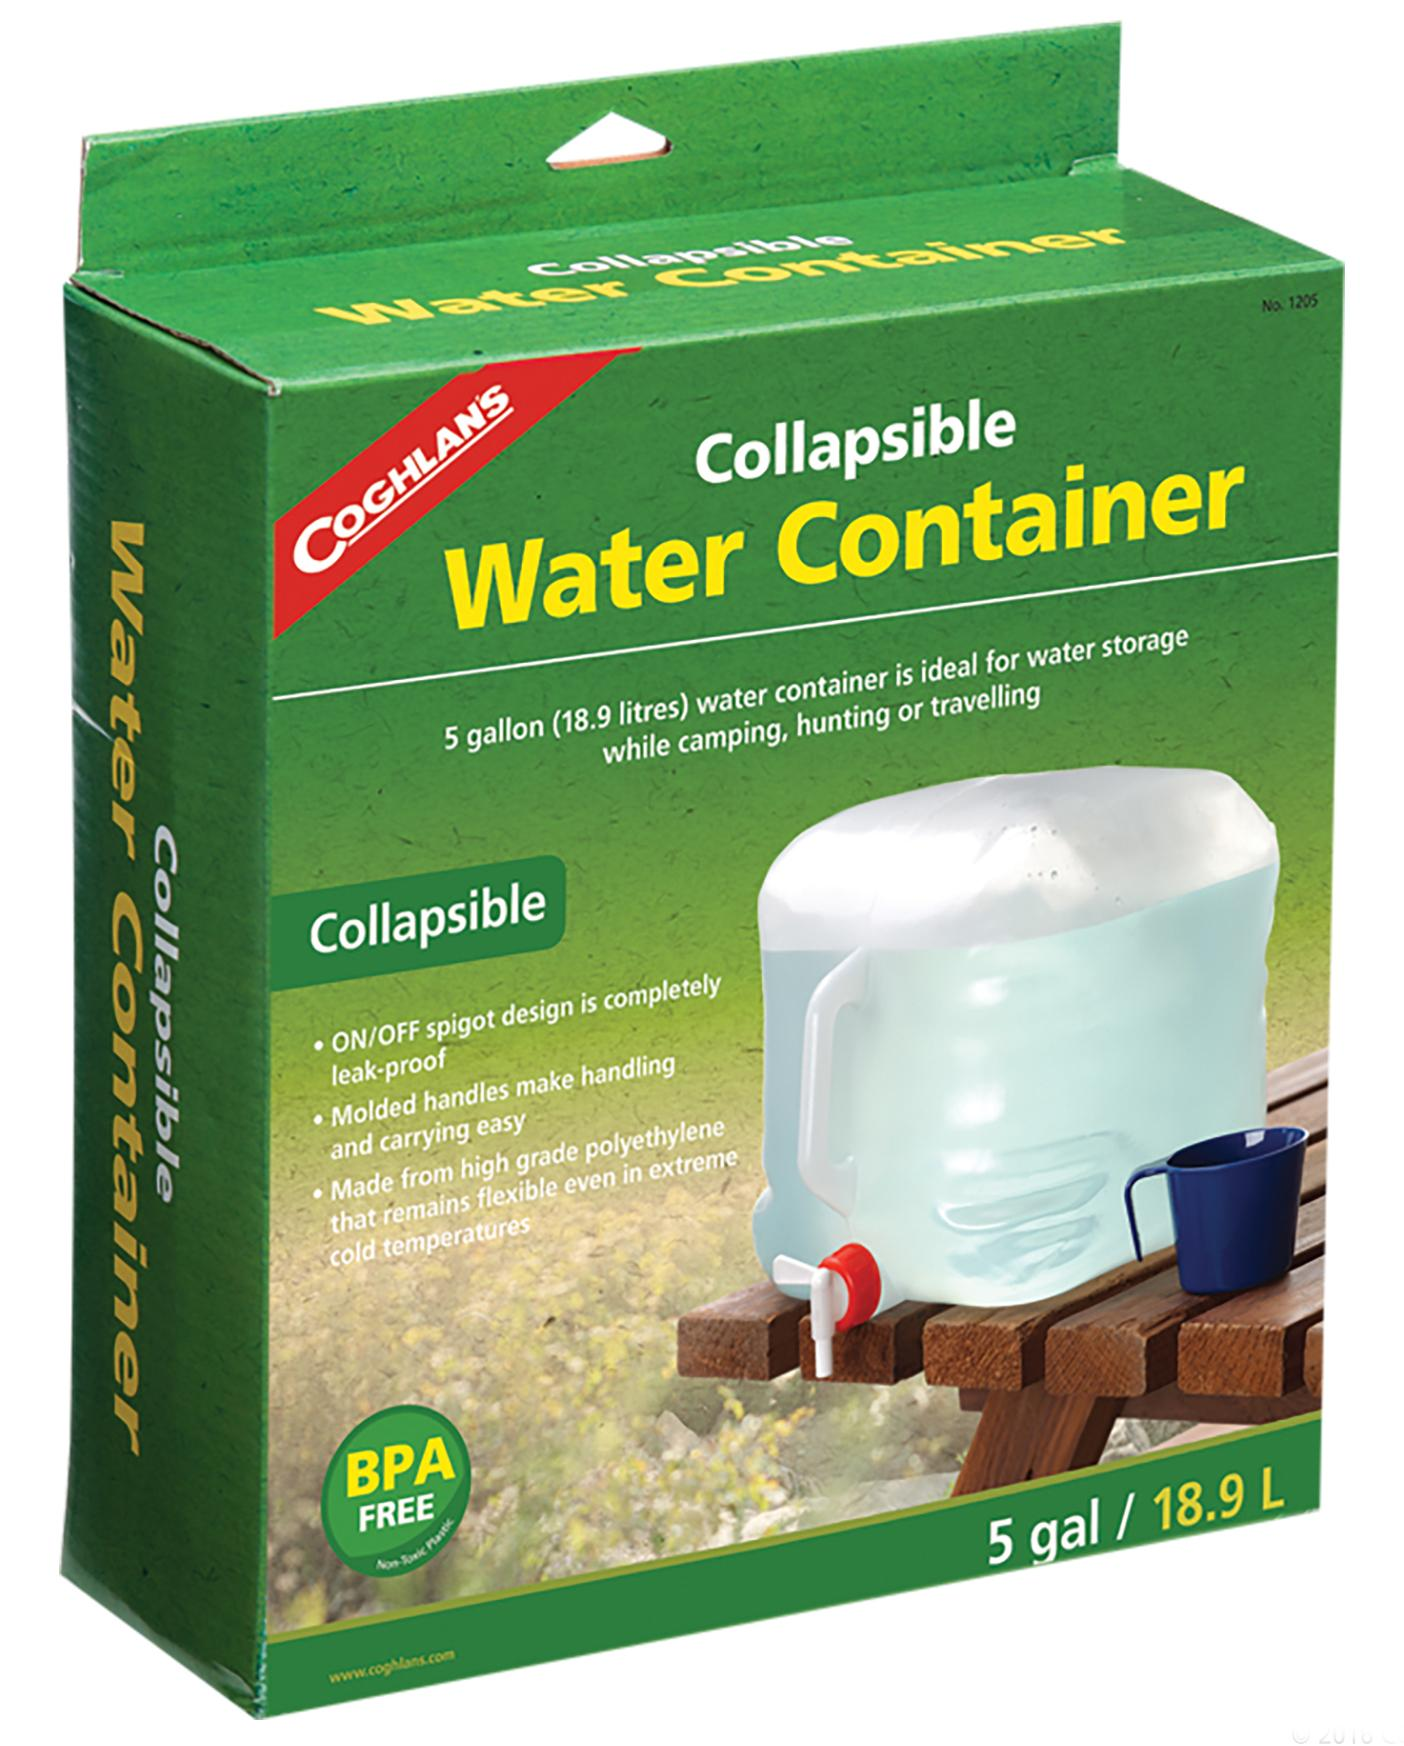 Amazoncom Coghlans Collapsible Water Container 5 Gallon Clear